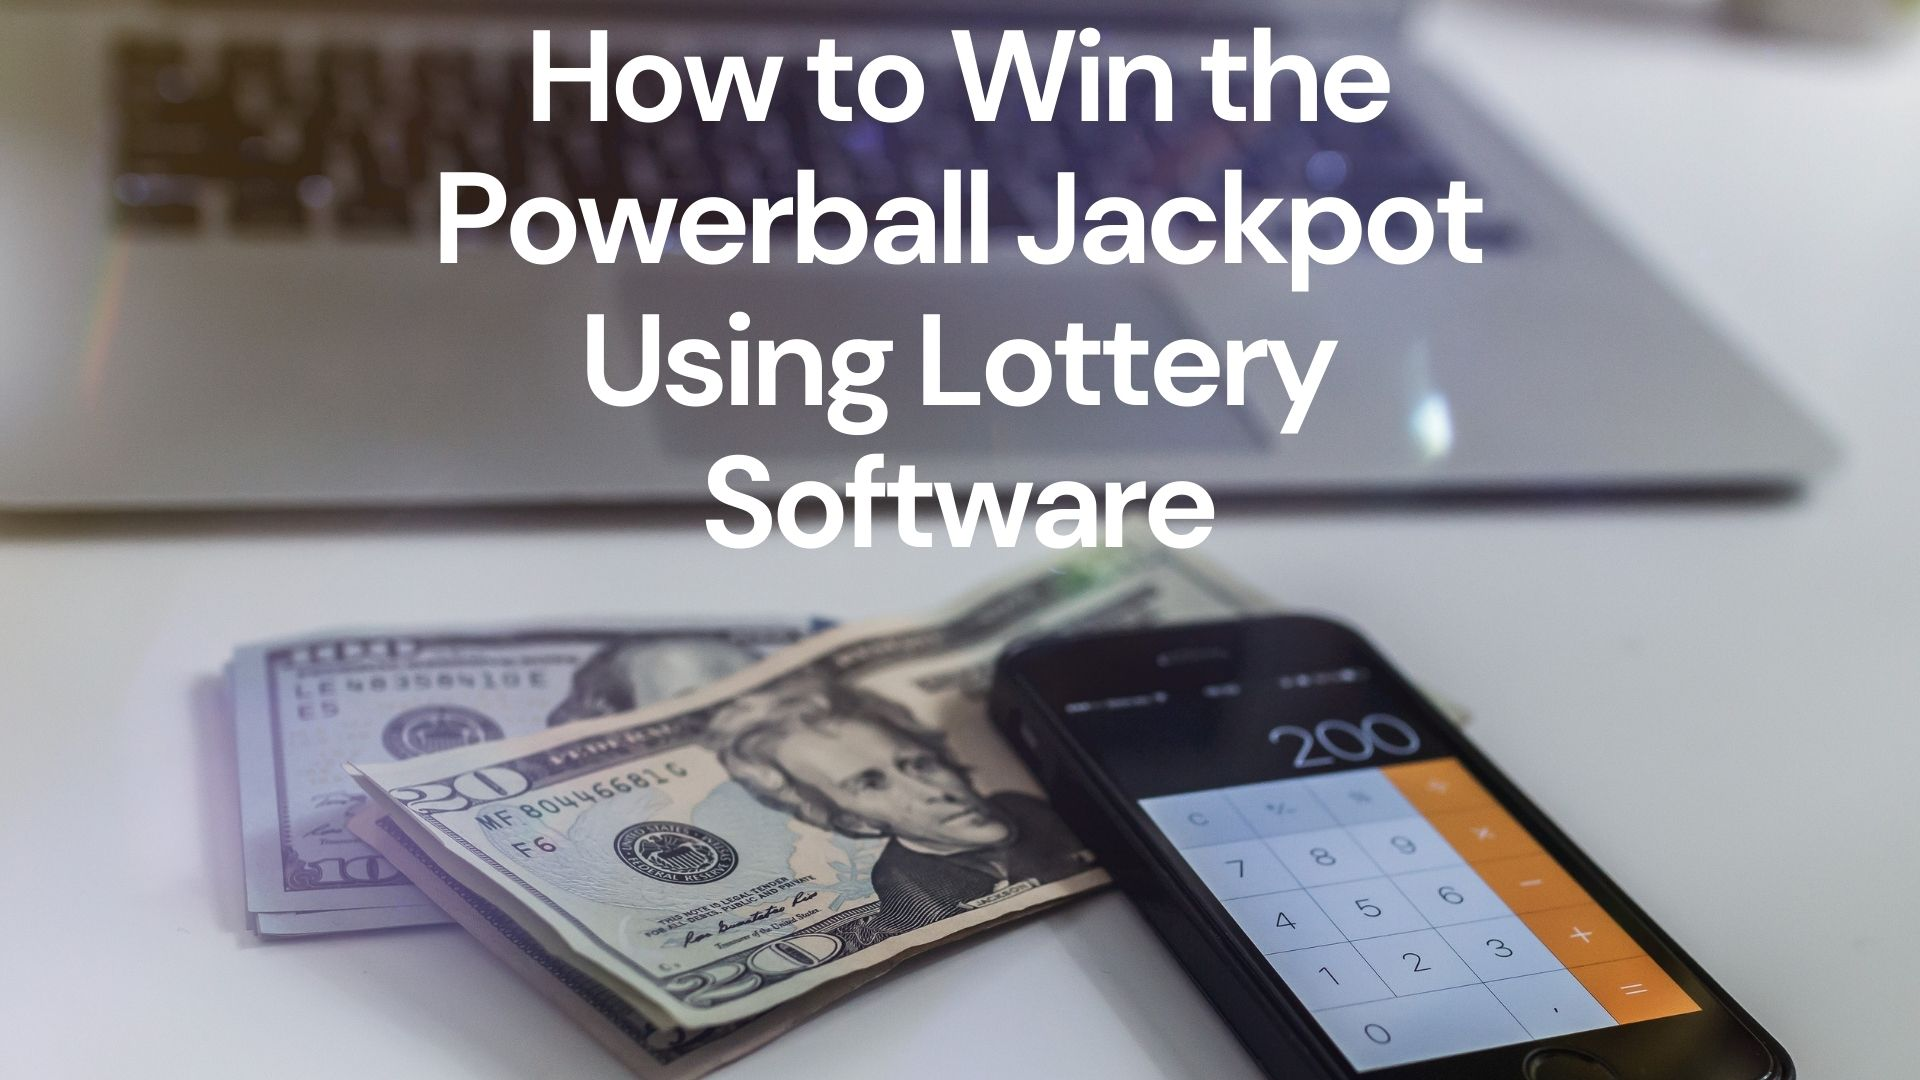 How to Win the Powerball Jackpot Using Lottery Software